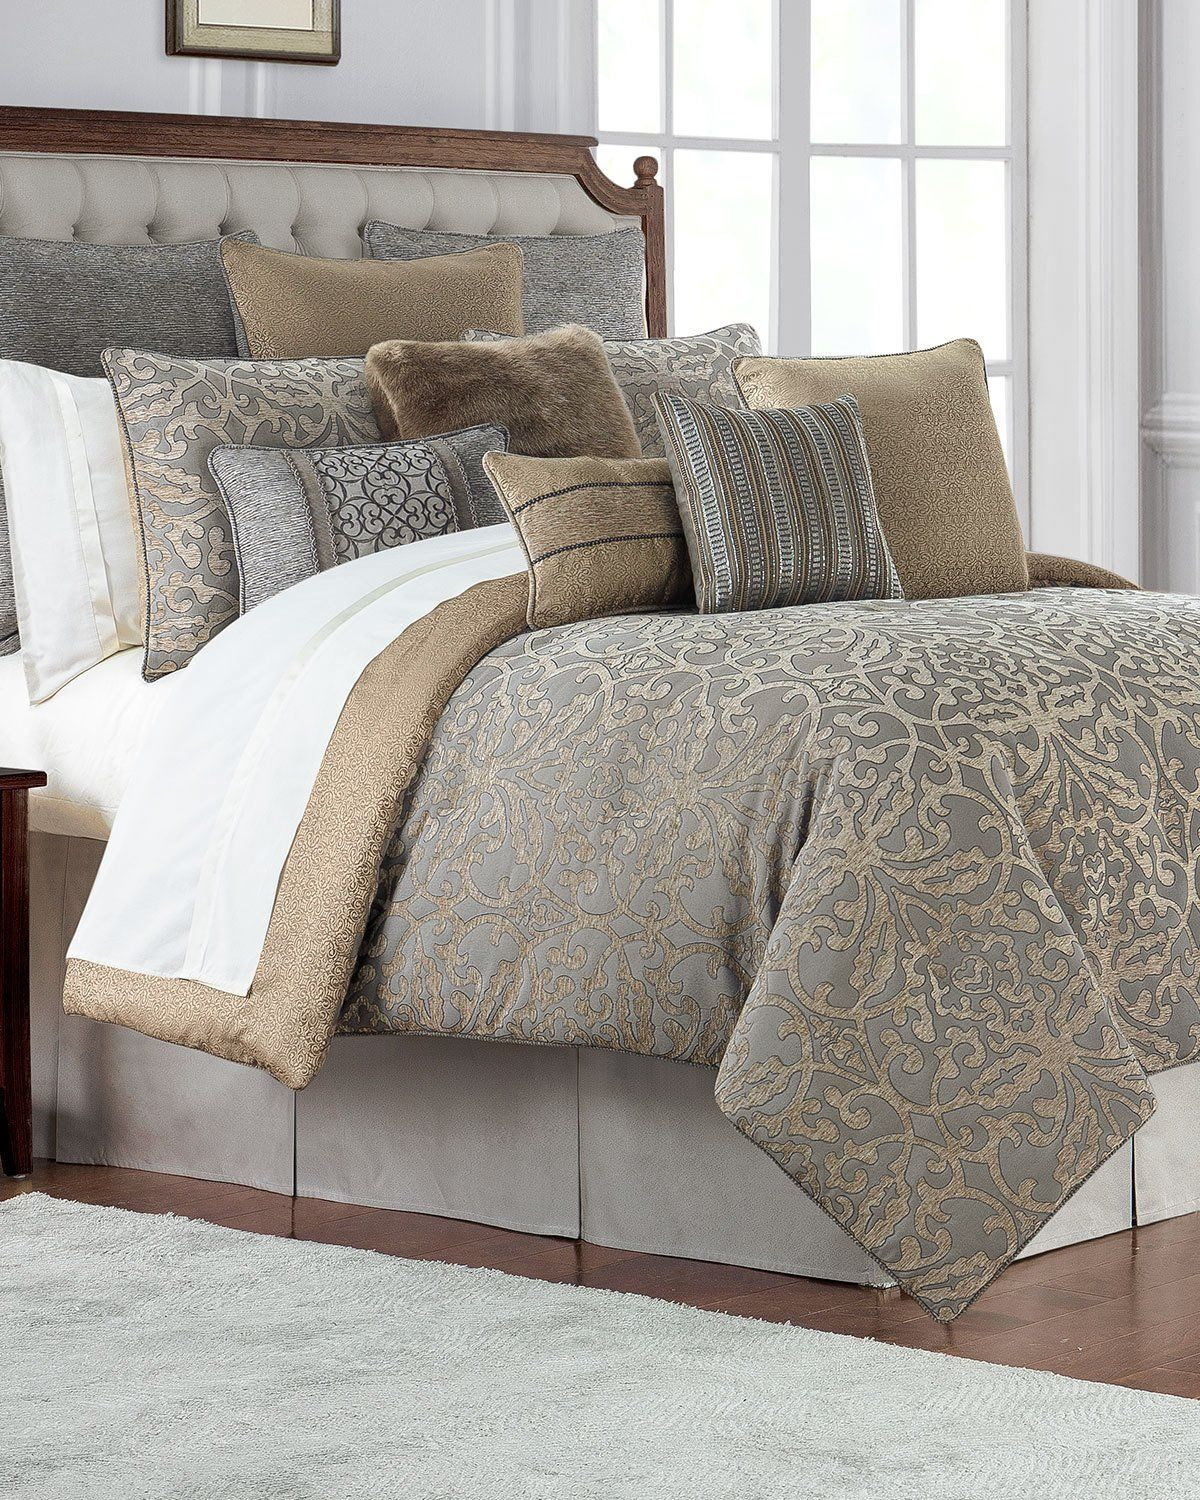 Waterford Carrick Queen Comforter Set Comforter Sets Bedroom